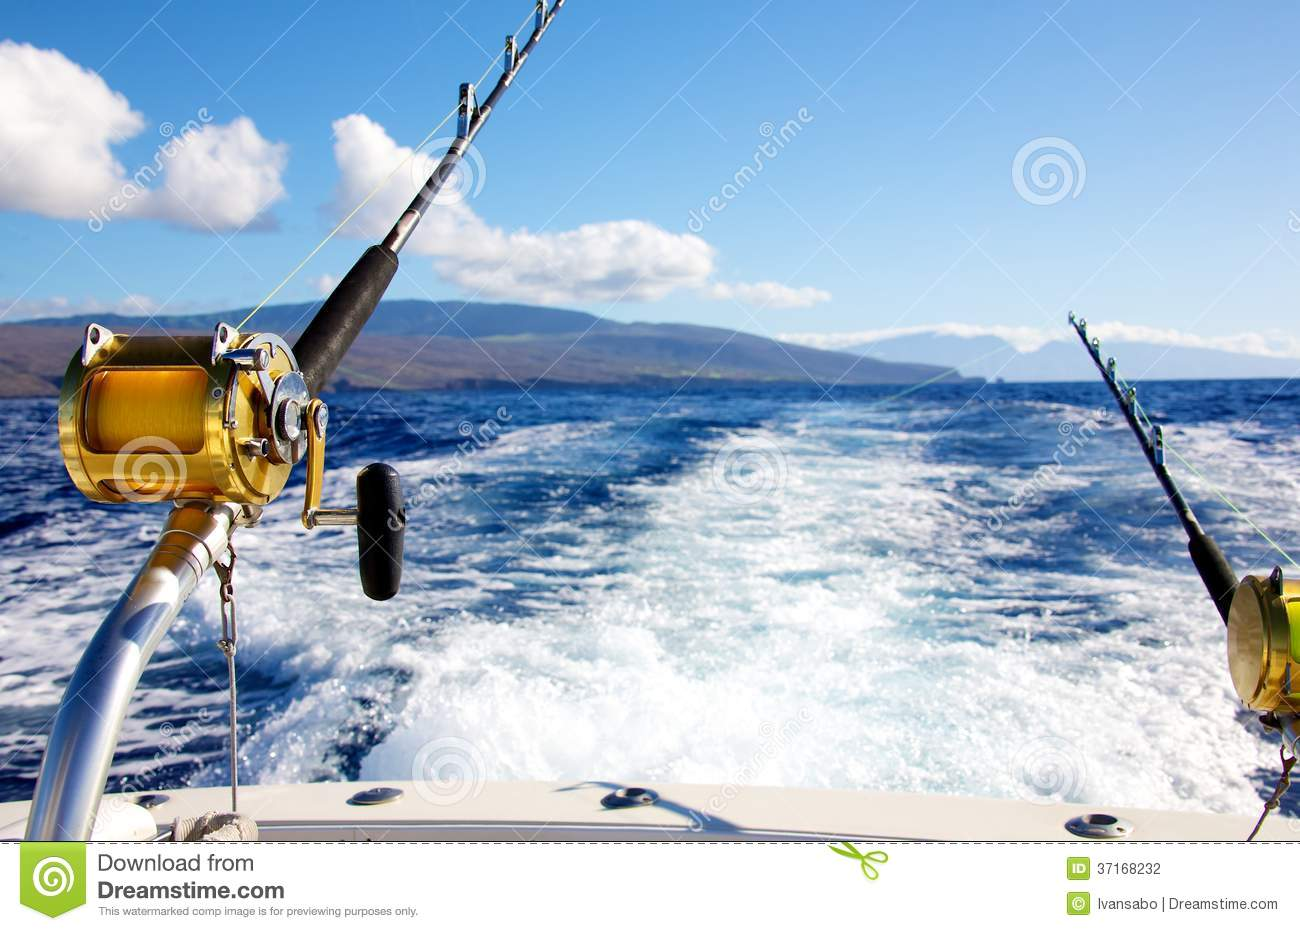 Trolling for big game stock photo. Image of reel, seascape - 37168232